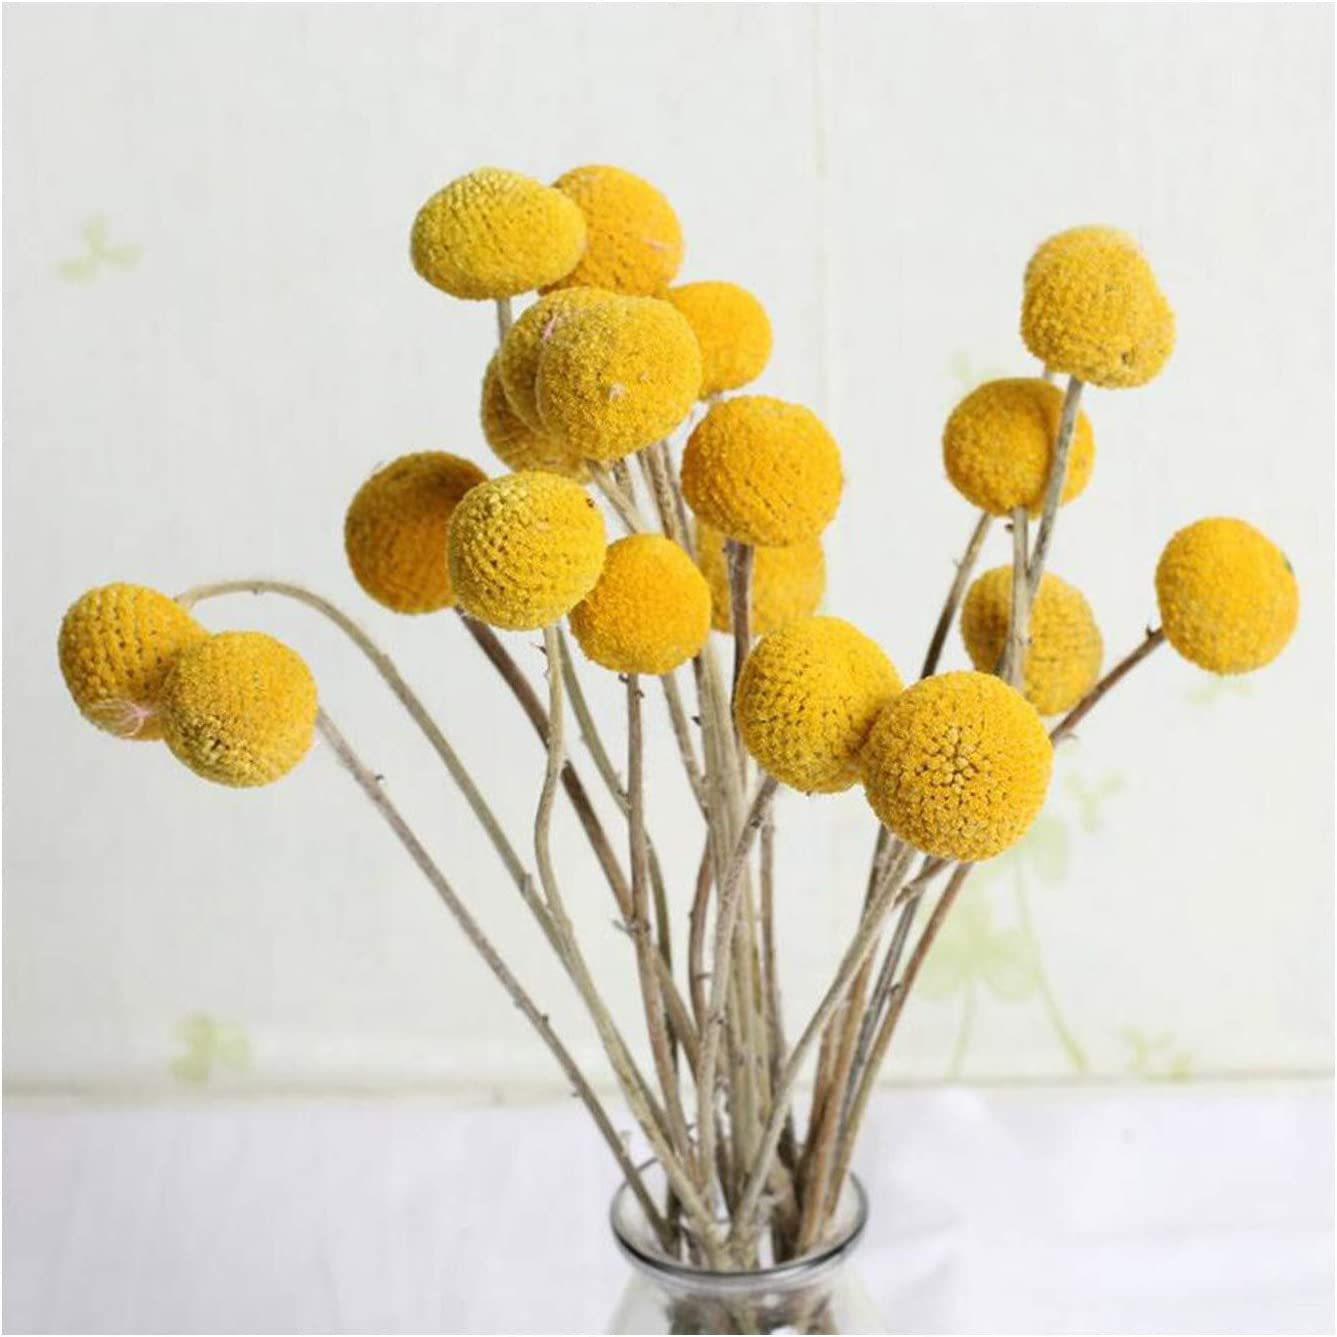 30Pcs Golden Houston Mall Ball Dried Ranking TOP4 Flowers ,Dried Balls,Artificia Billy